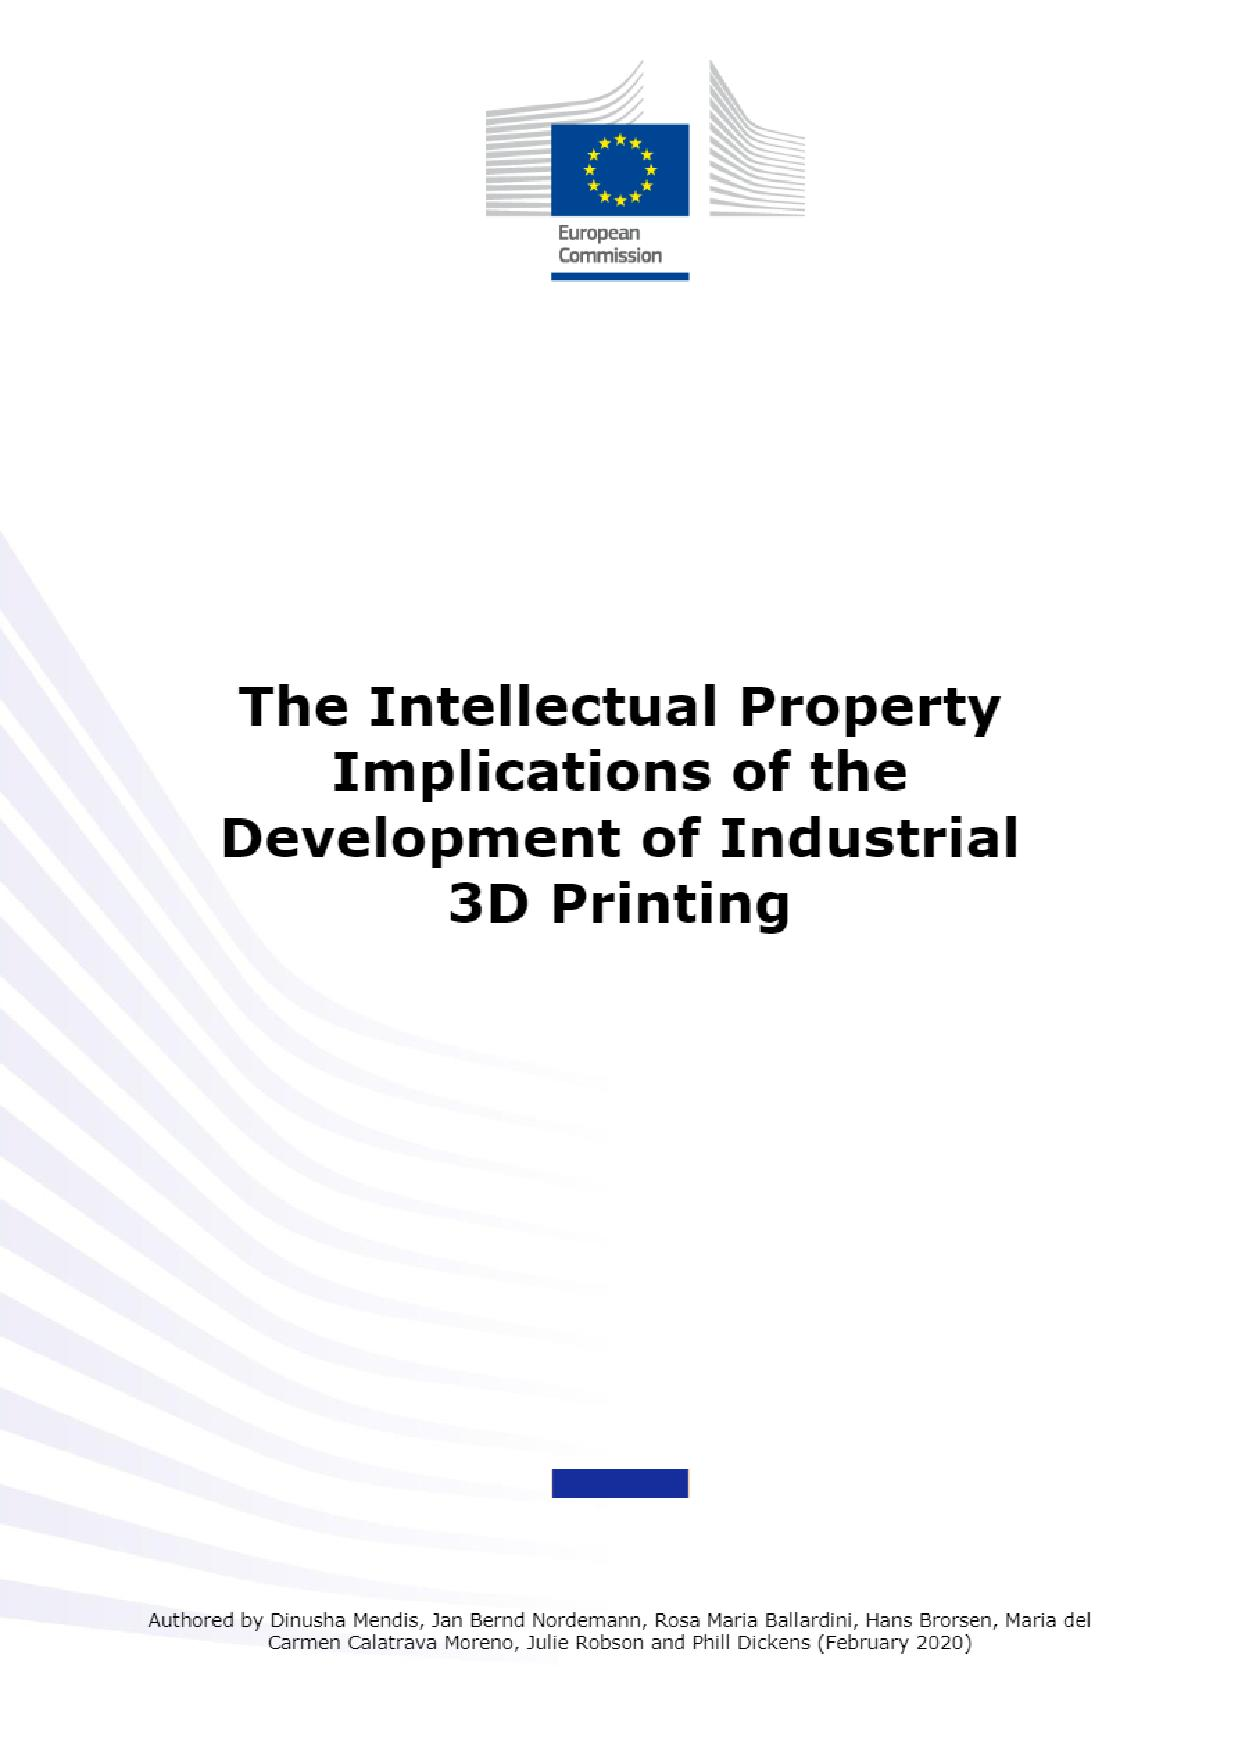 The Intellectual Property implications of the development of industrial 3D printing report. Image via Publications Office of the EU.